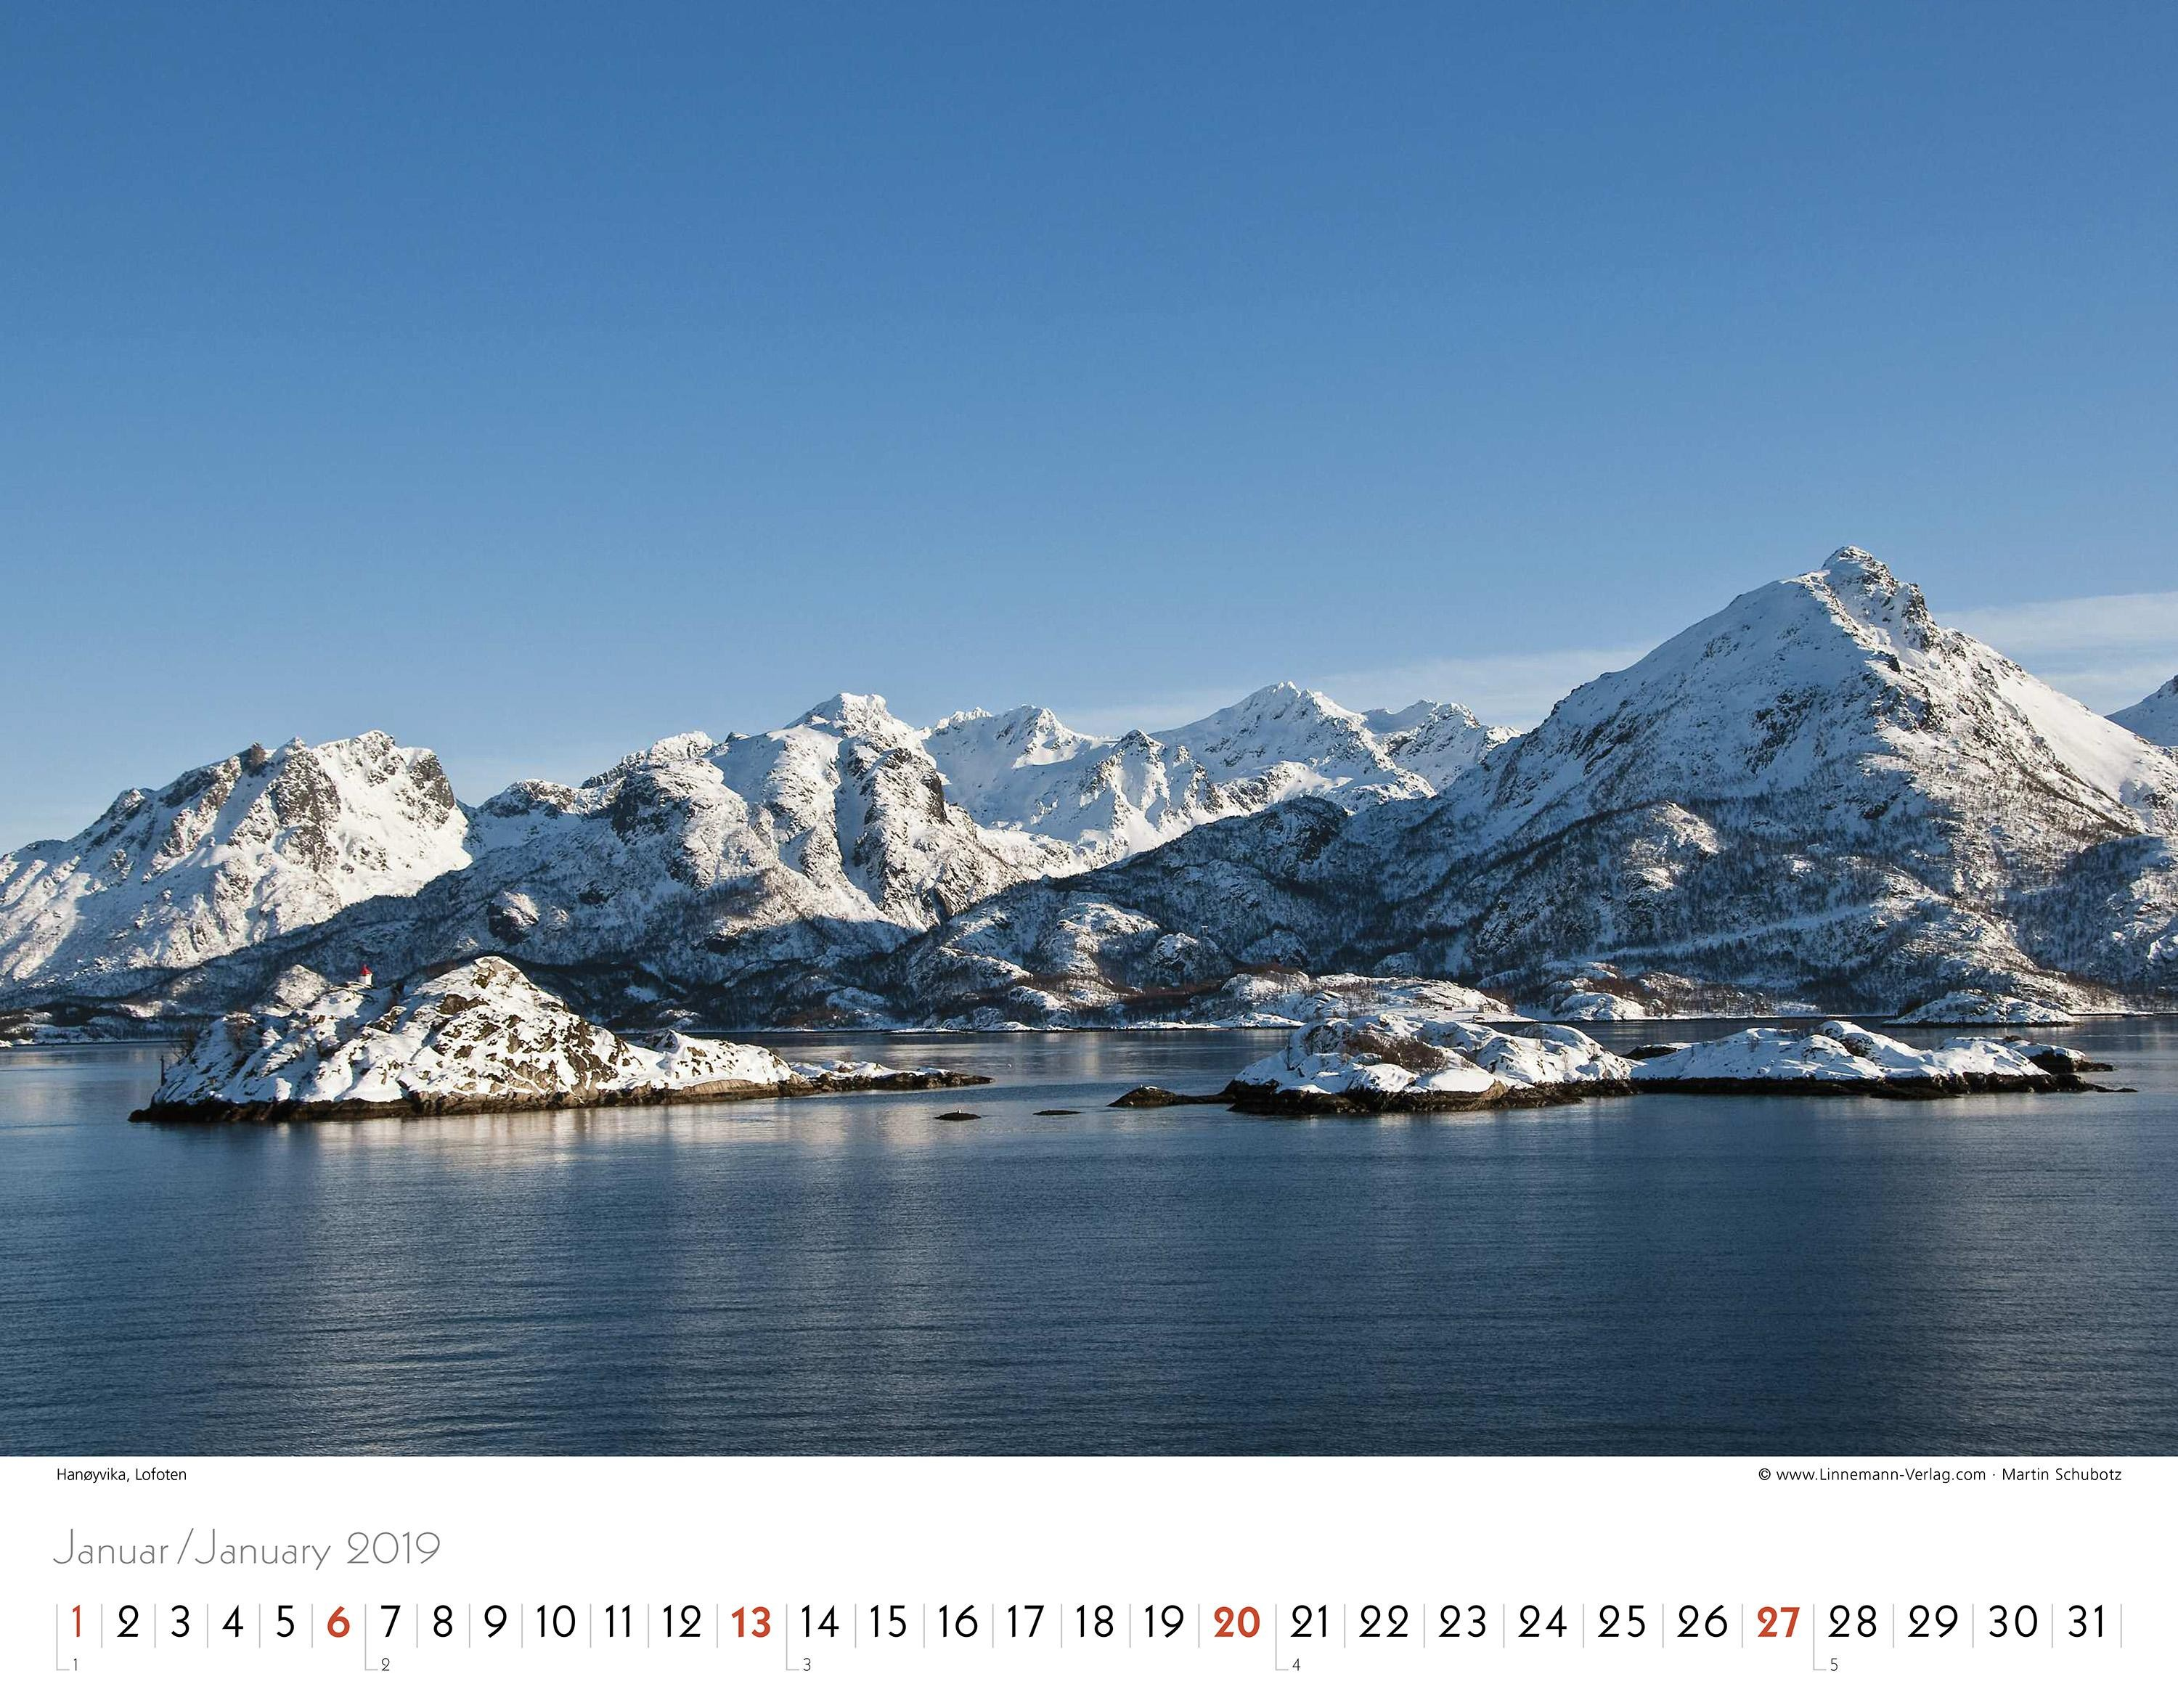 March 2019 Calendar Landscape Más Recientes Kalender Hurtigruten 2019 Of March 2019 Calendar Landscape Recientes 2018 Hubble Space Telescope Advent Calendar the atlantic